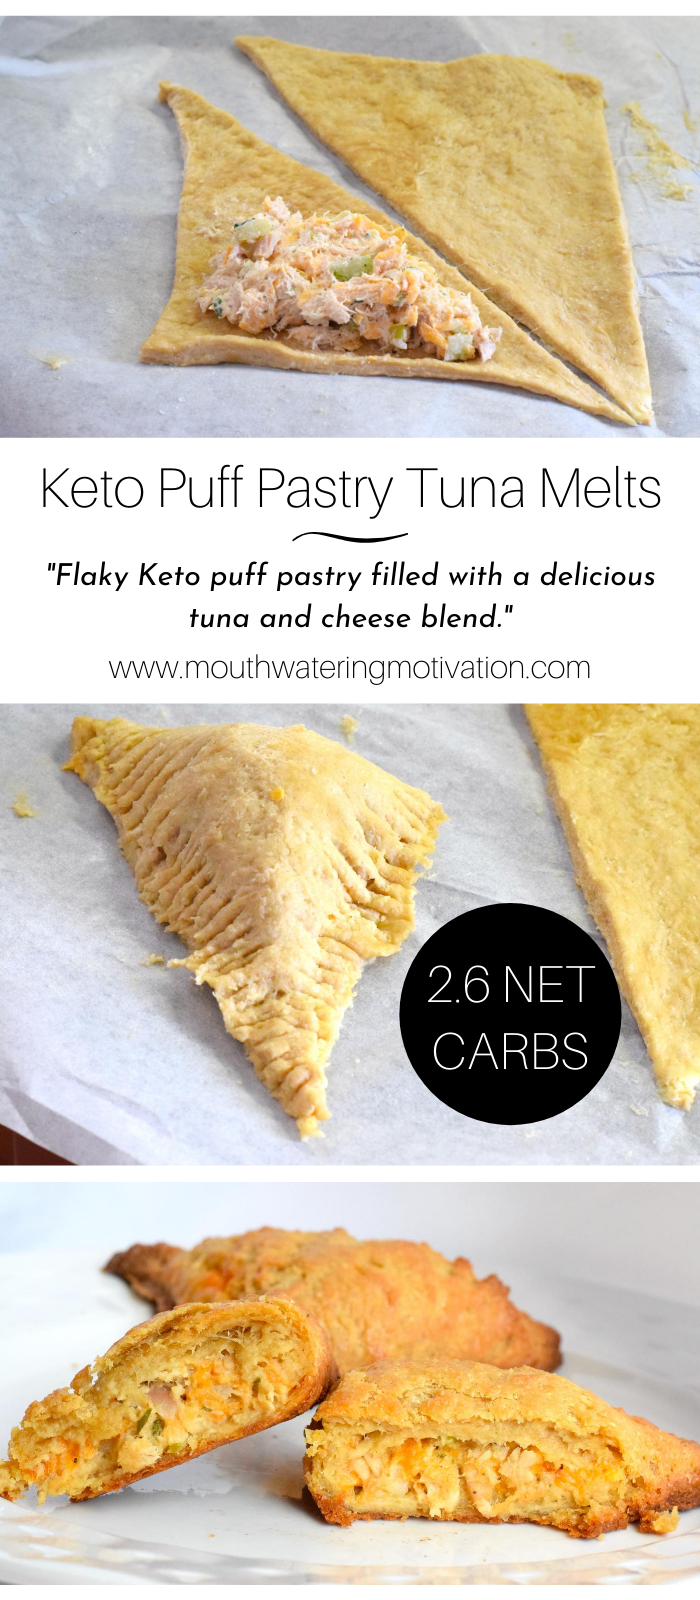 Keto Puff Pastry Tuna Melts